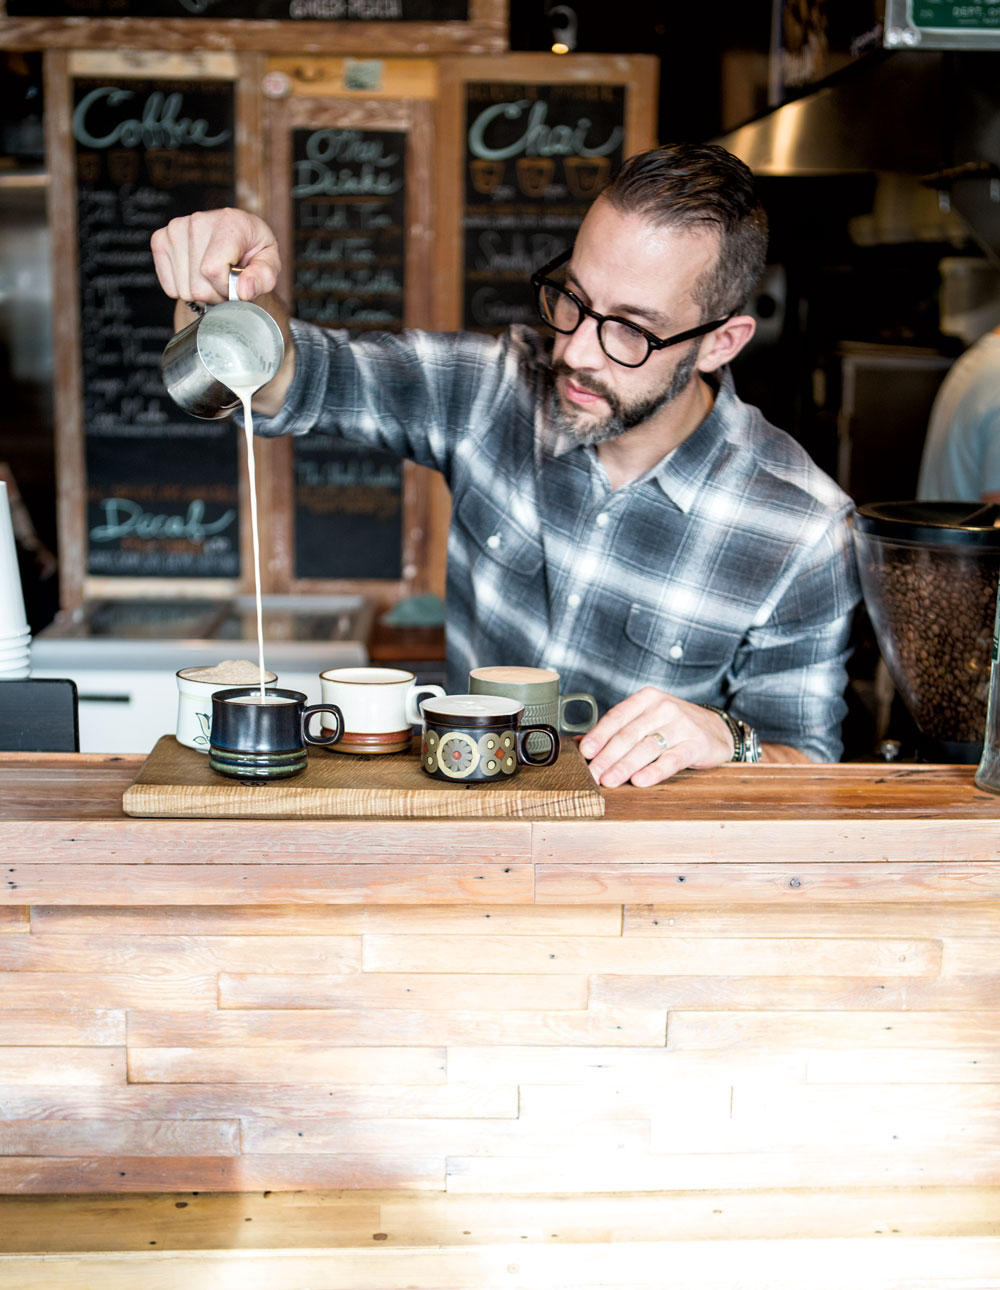 Nate Snell, who owns Pip's Original with his wife, Jamie, pours a chai flight at the Portland café. (Photos: Cory Eldridge.)